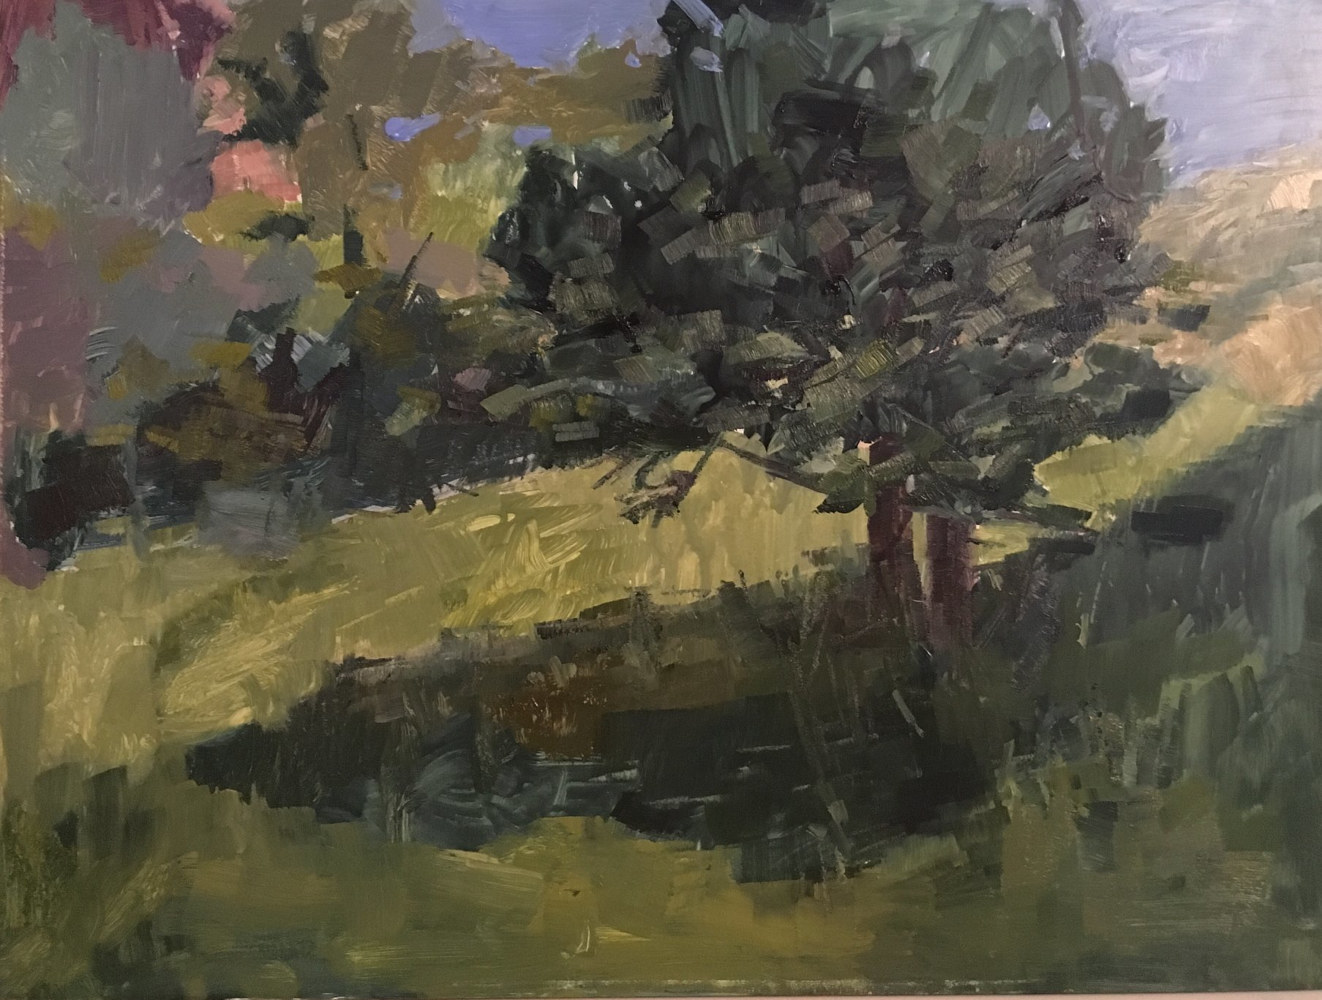 Oil painting Settlers Park, Boulder (Plein air) by Karen Smith